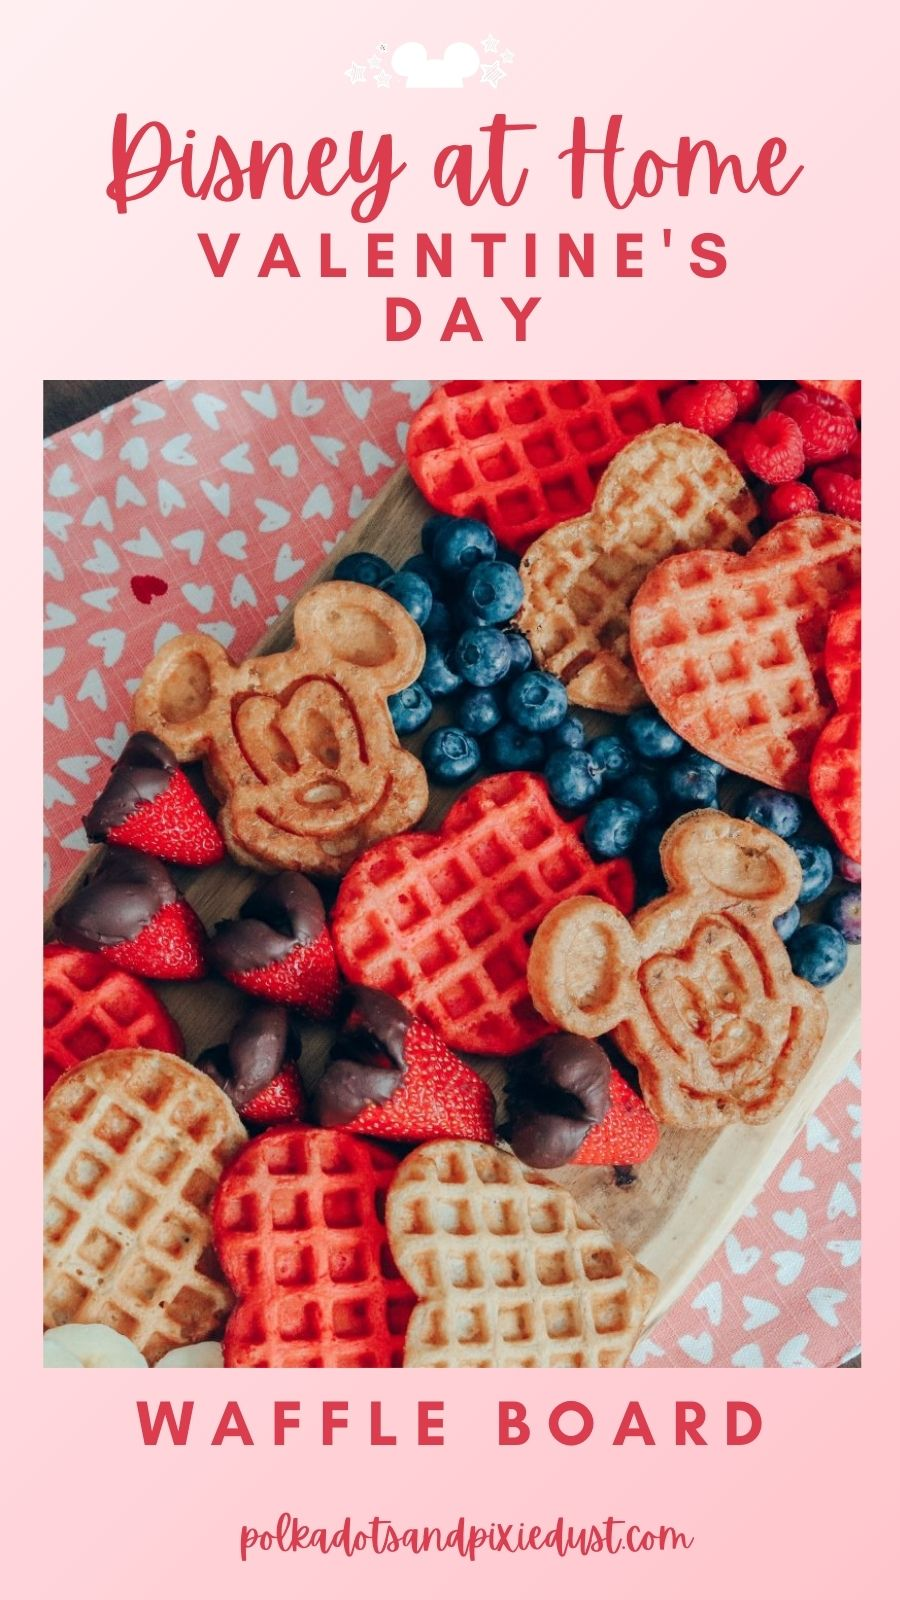 Settle in for Valentine's Day at home with this Mickey Waffle Board, Berries and more to make your Disney day extra special. #disneyrecipes #mickeywaffles #polkadotpixies